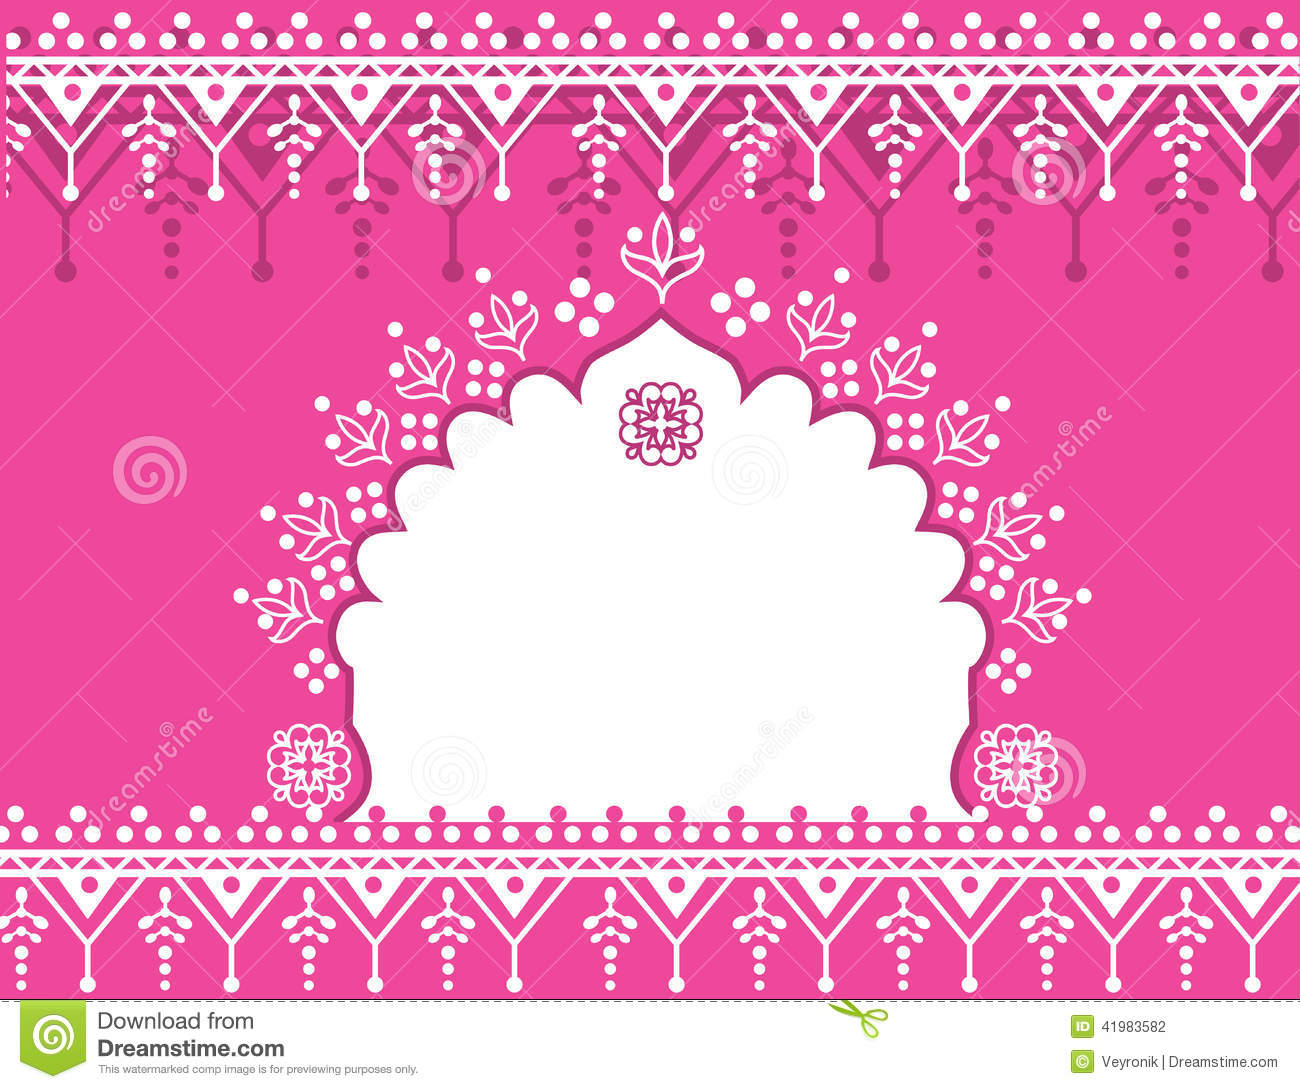 Pink Indian Background Stock Vector - Image: 41983582